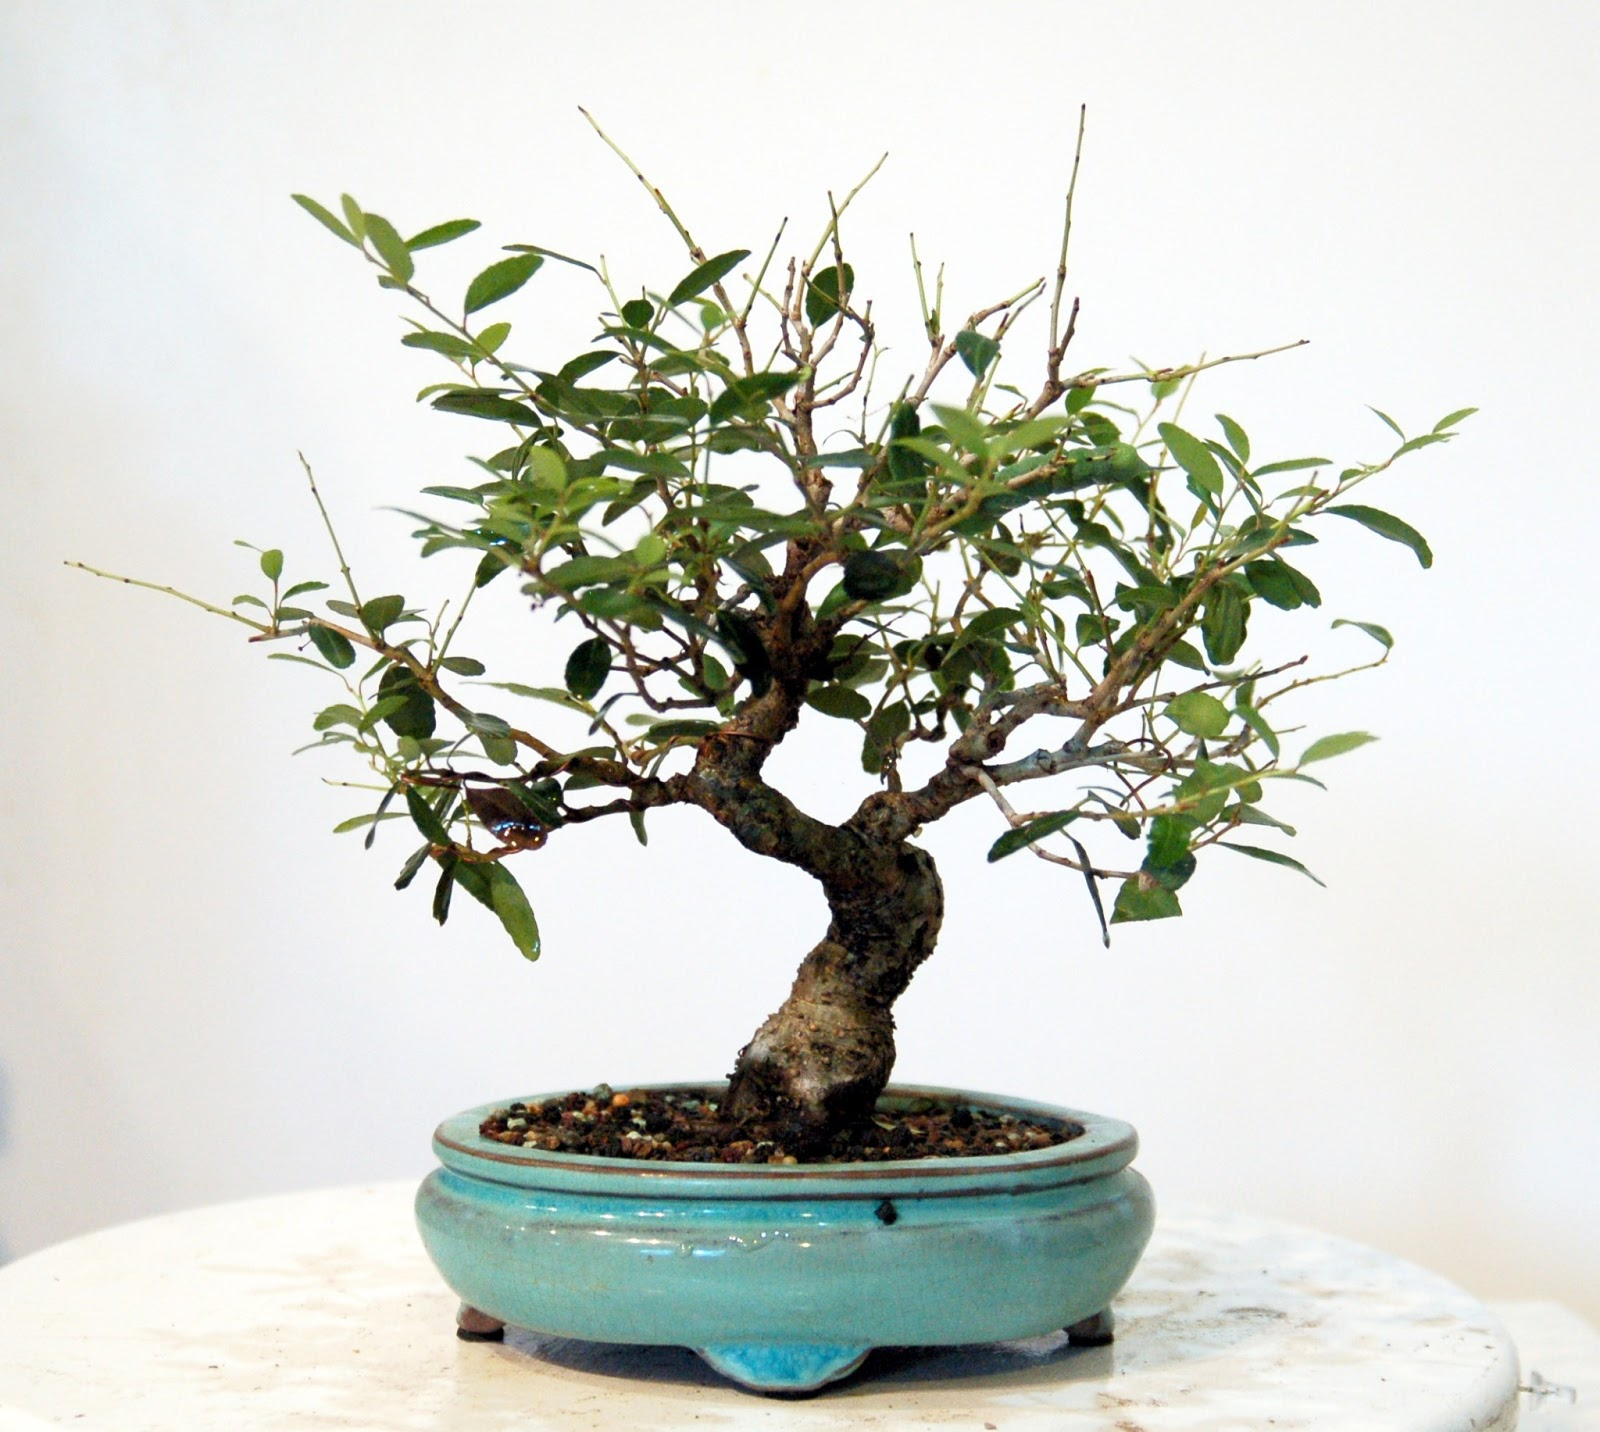 Heart Of Texas Bonsai Dwarf Yaupon Holly 10 Stop Chewing My Tree